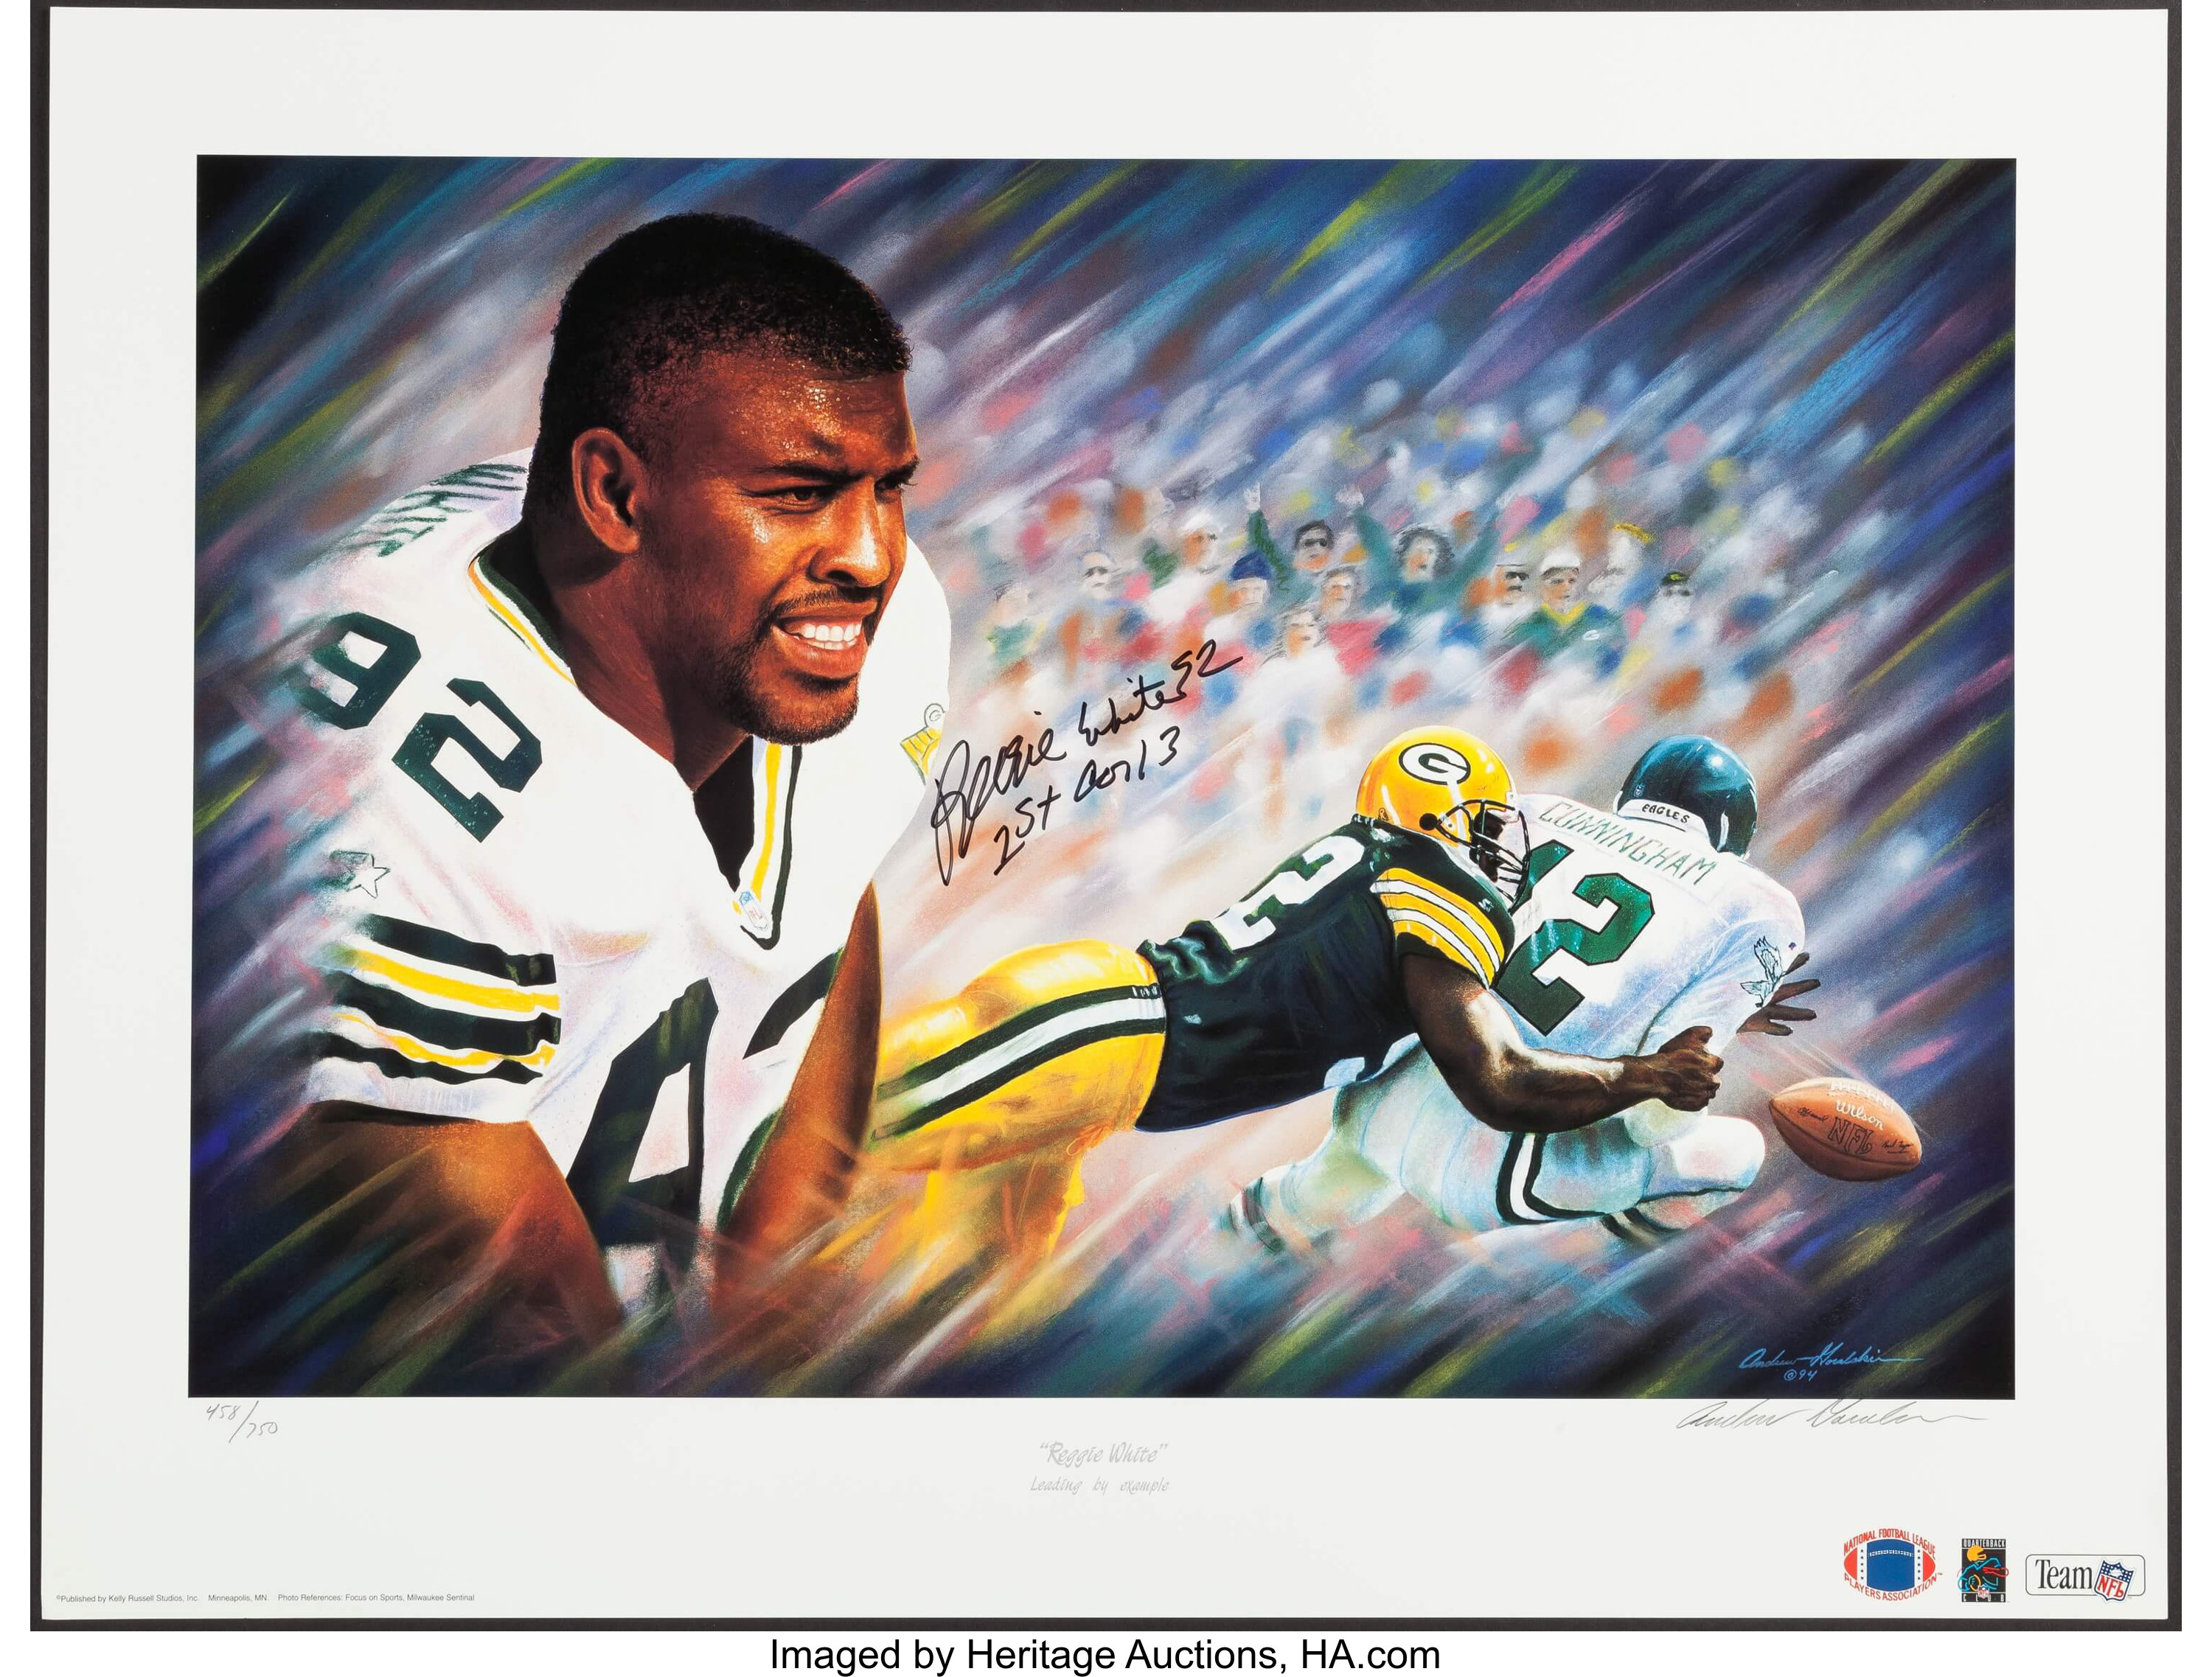 reputable site bc423 c10fd Reggie White Signed Lithograph.... Football Collectibles ...